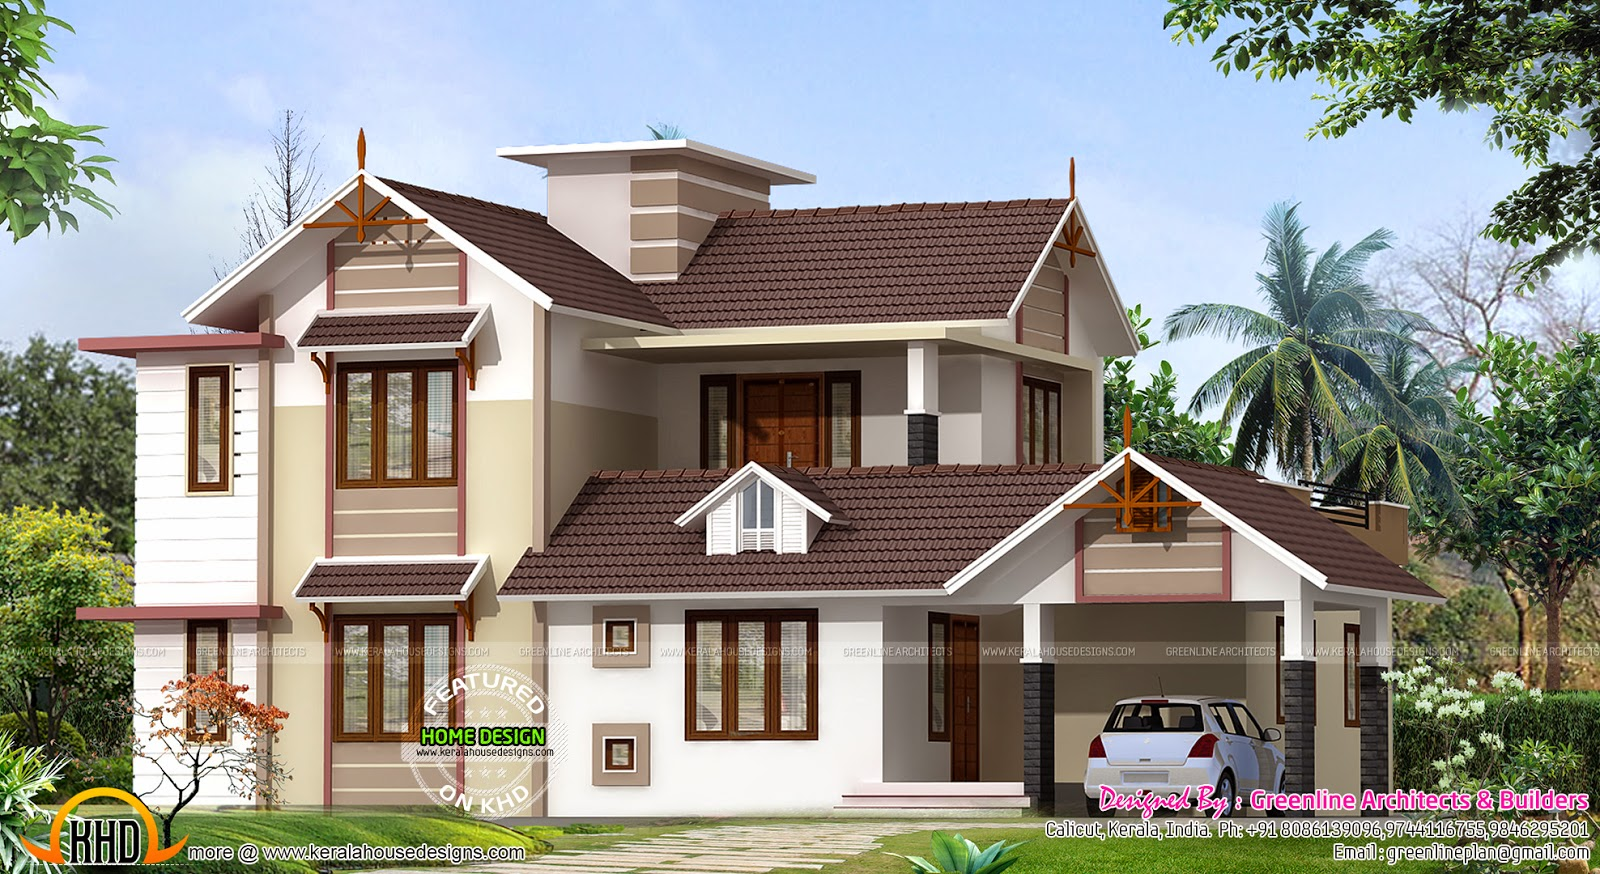 2400 sq ft new house design kerala home design and floor On new house design photos